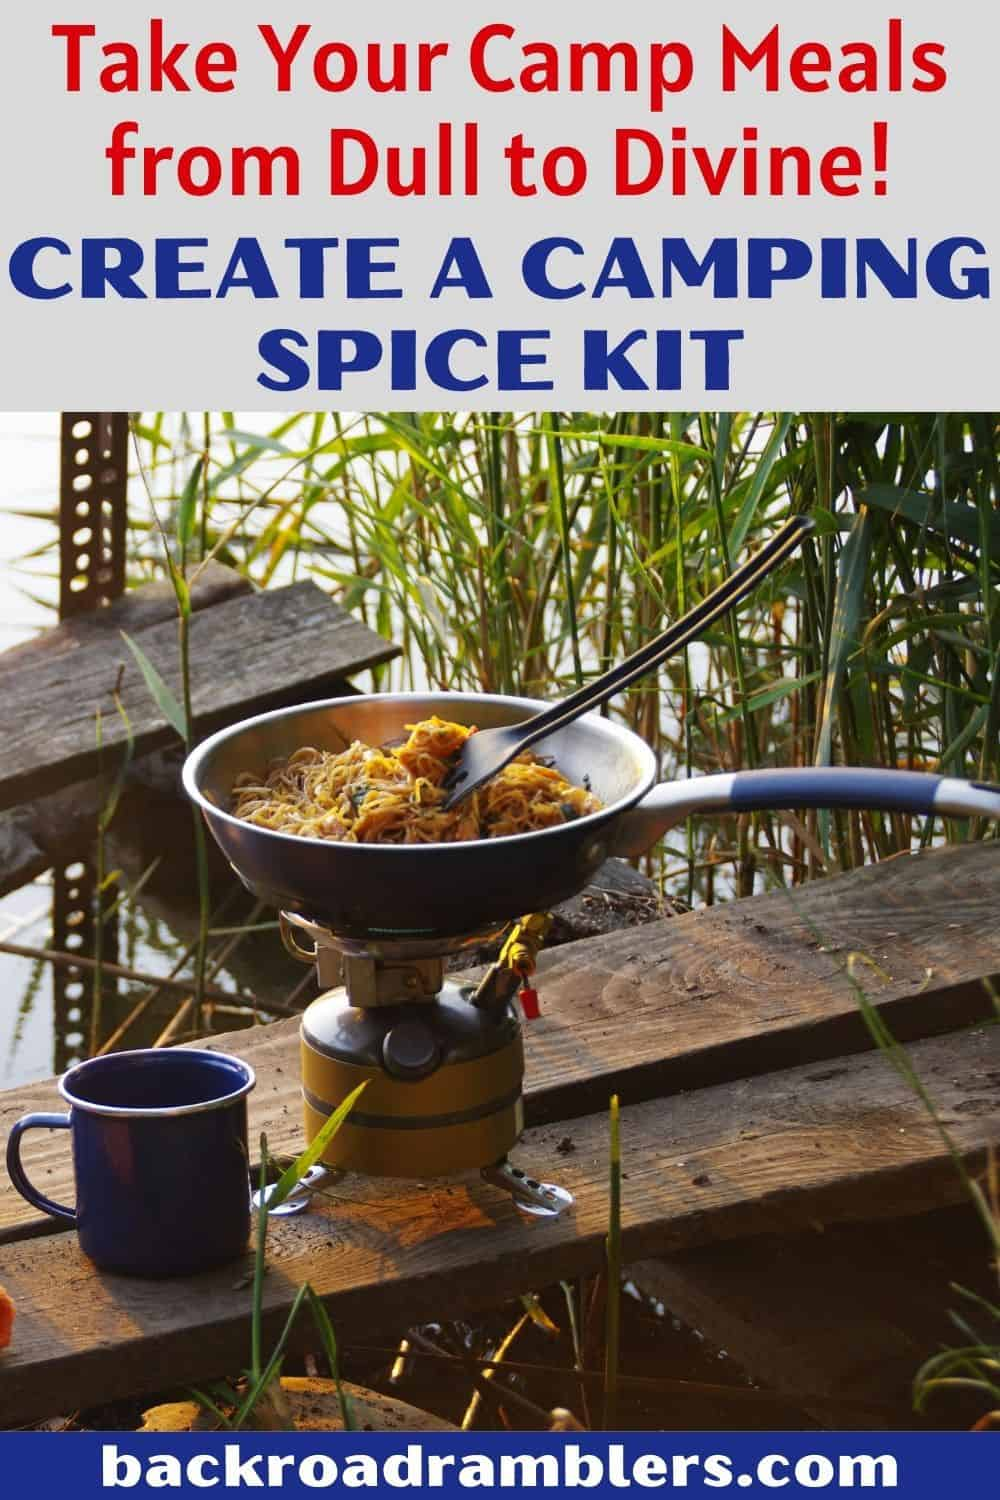 A camping stove with noodles in a frying pan cooking. Caption reads: Take Your Camp Meals from Dull to Divine - Create a Camping Spice Kit